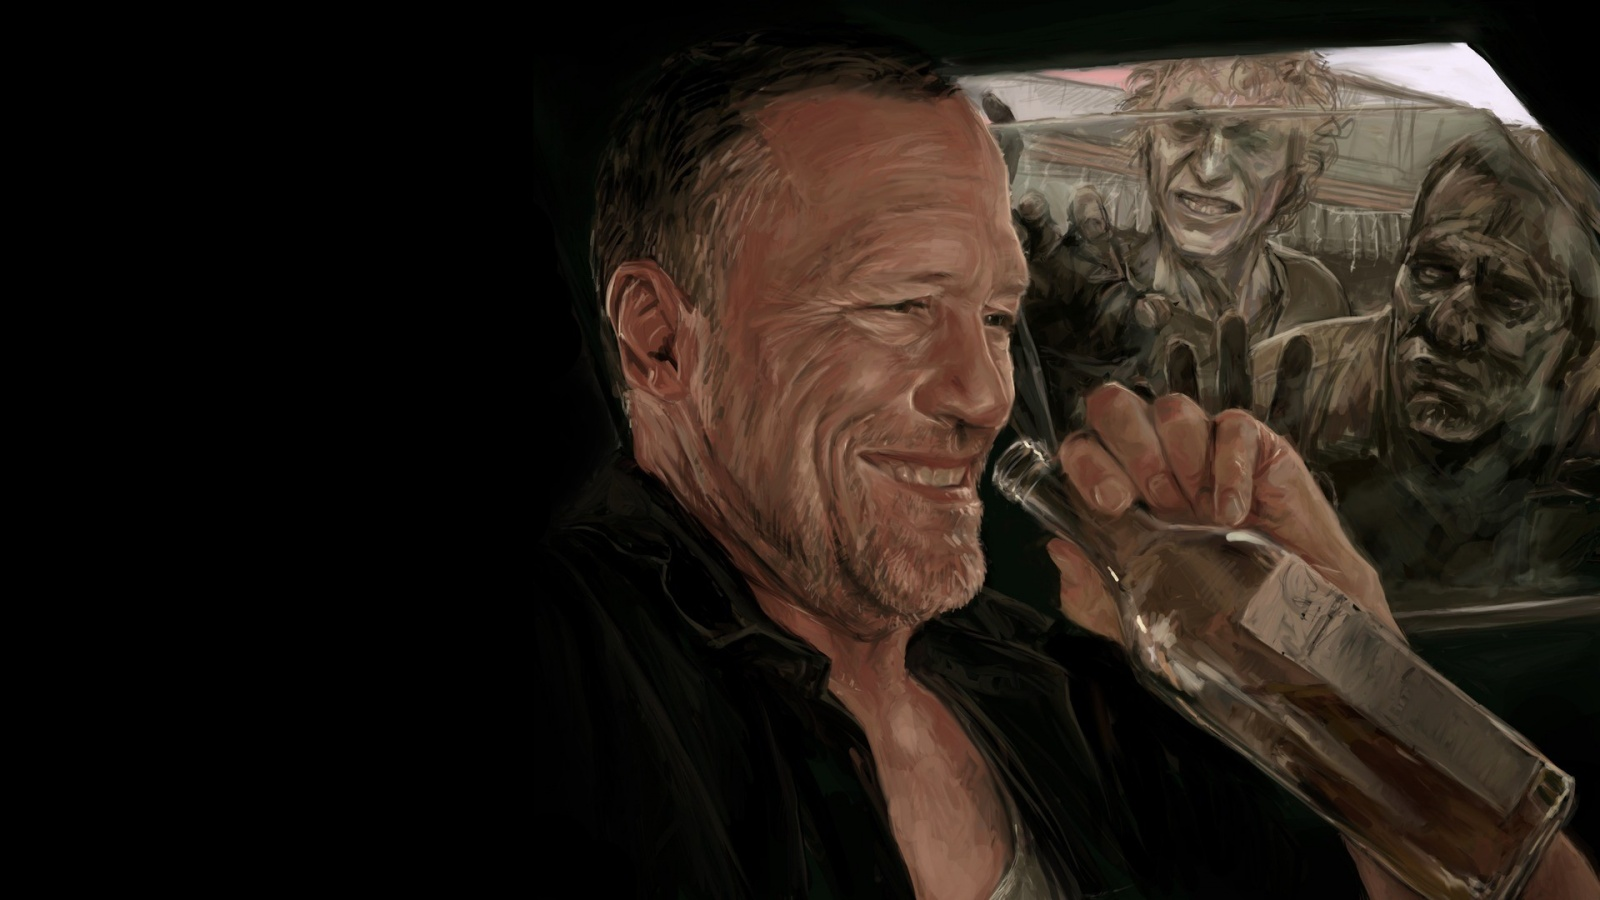 Michael rooker zombies art